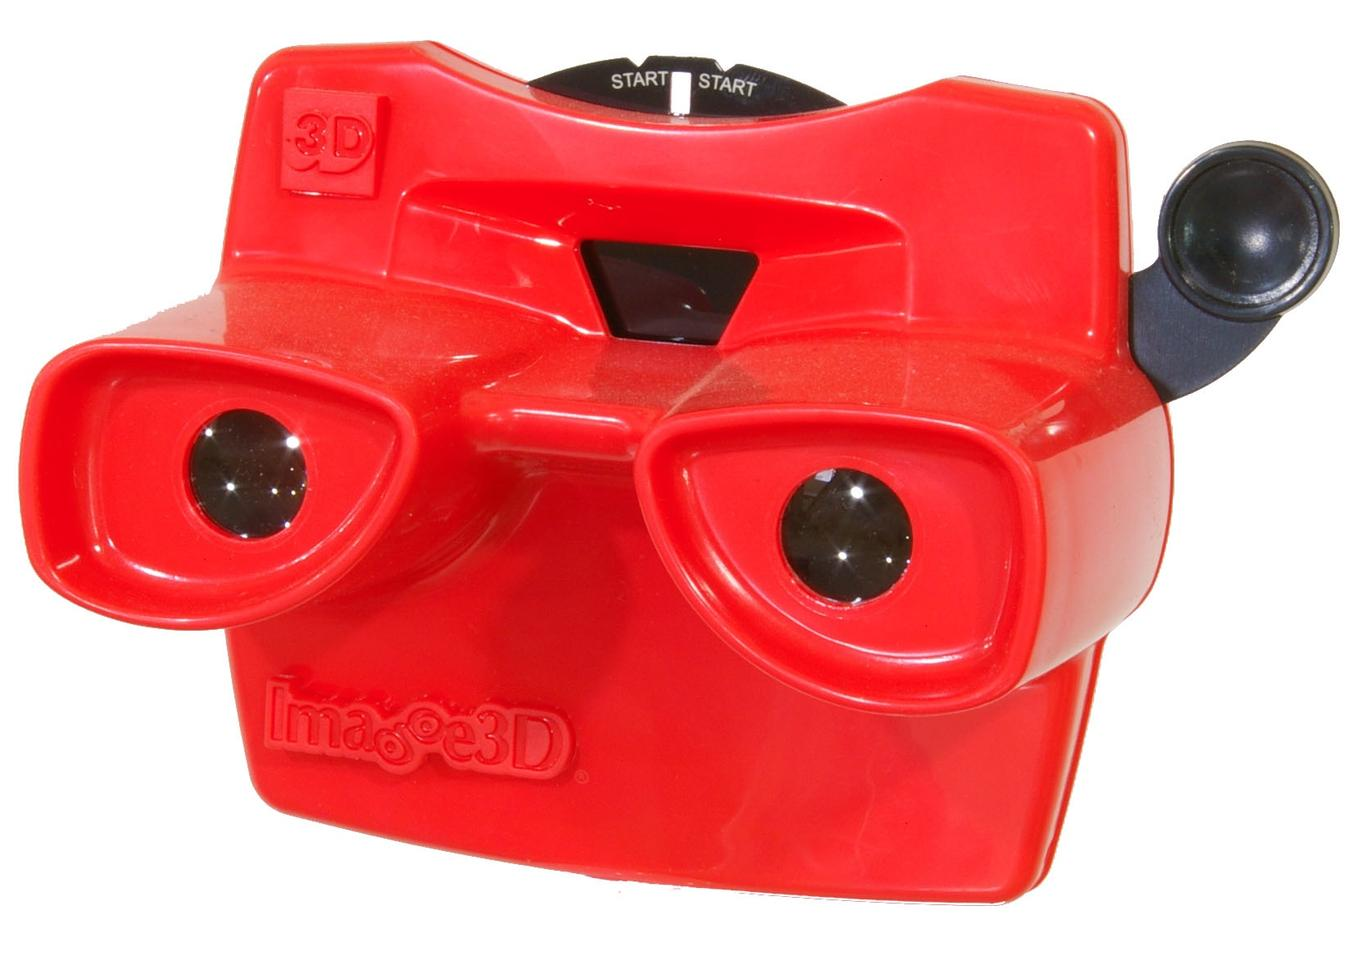 The Image3D viewer was inspired by the classic View-Master